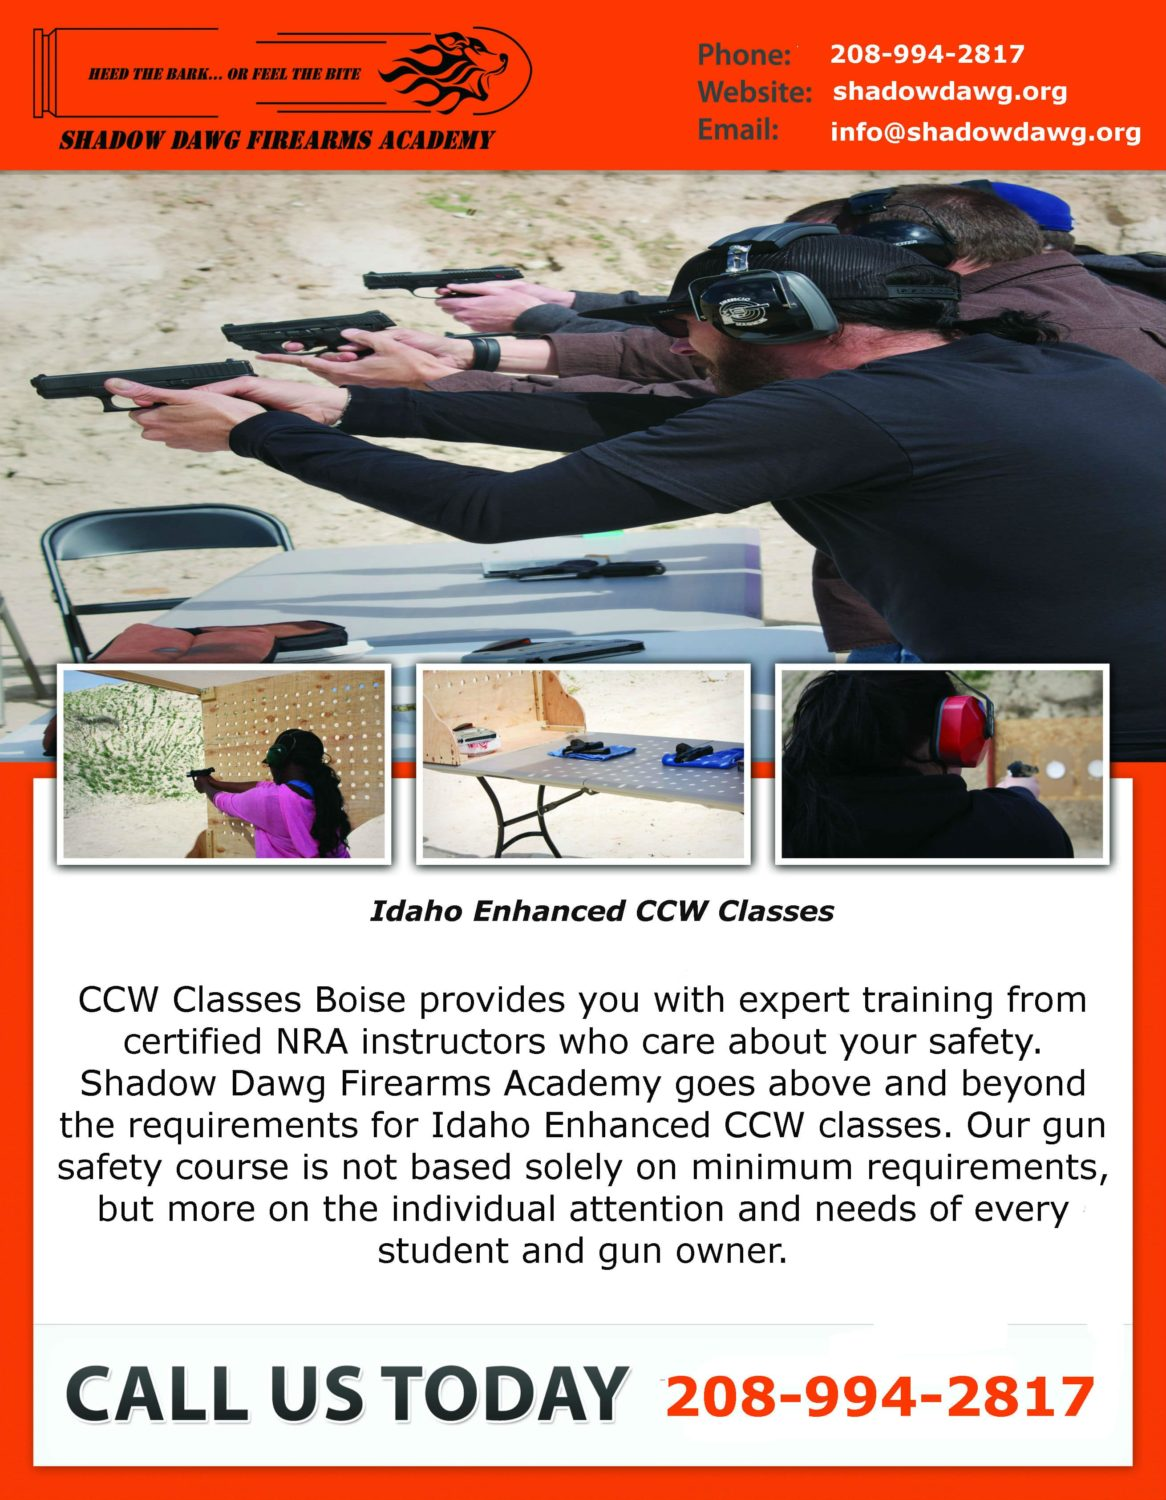 Idaho-Enhanced-CCW-Classes-Boise